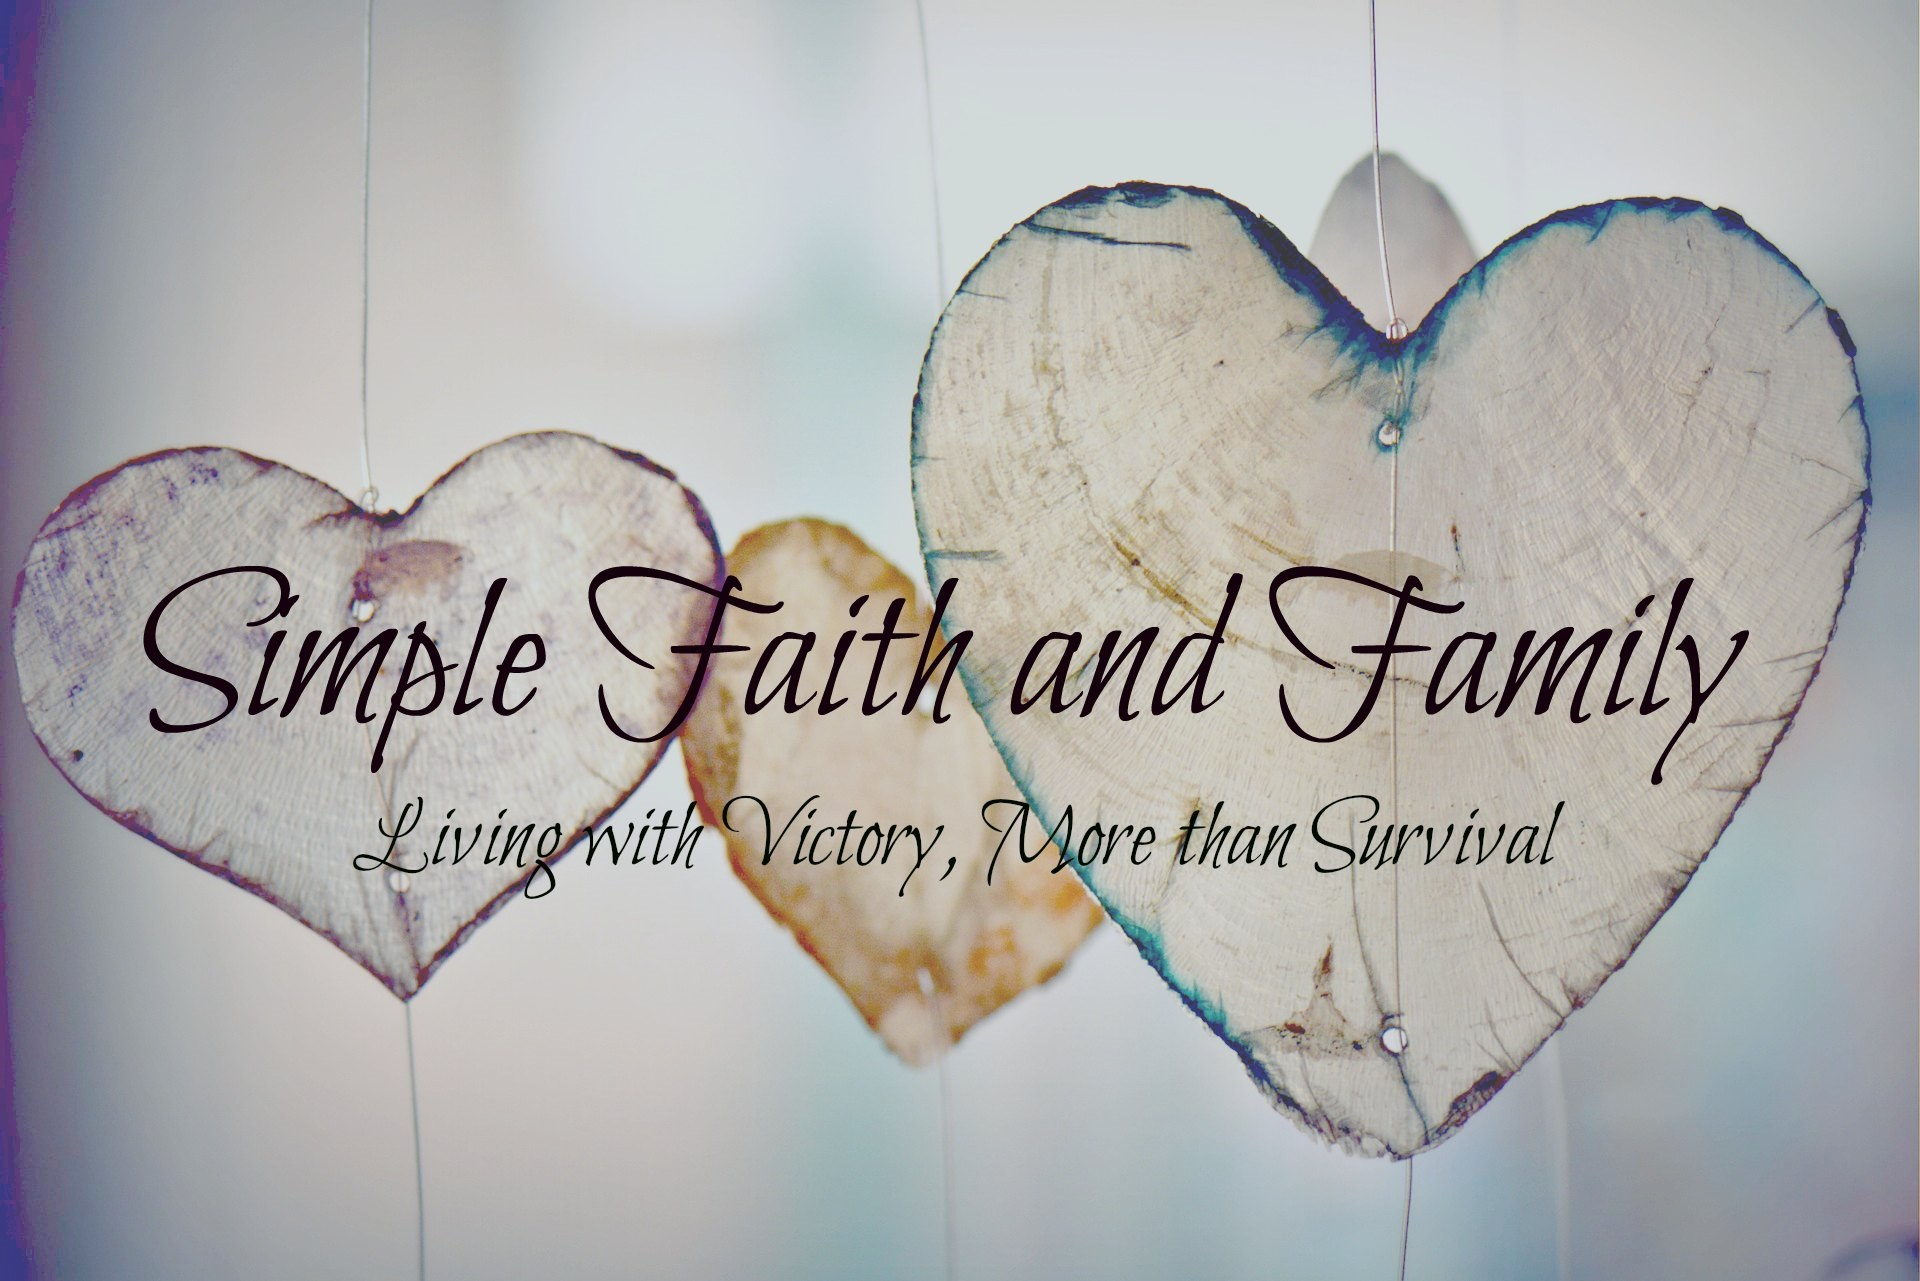 Simple Faith and Family